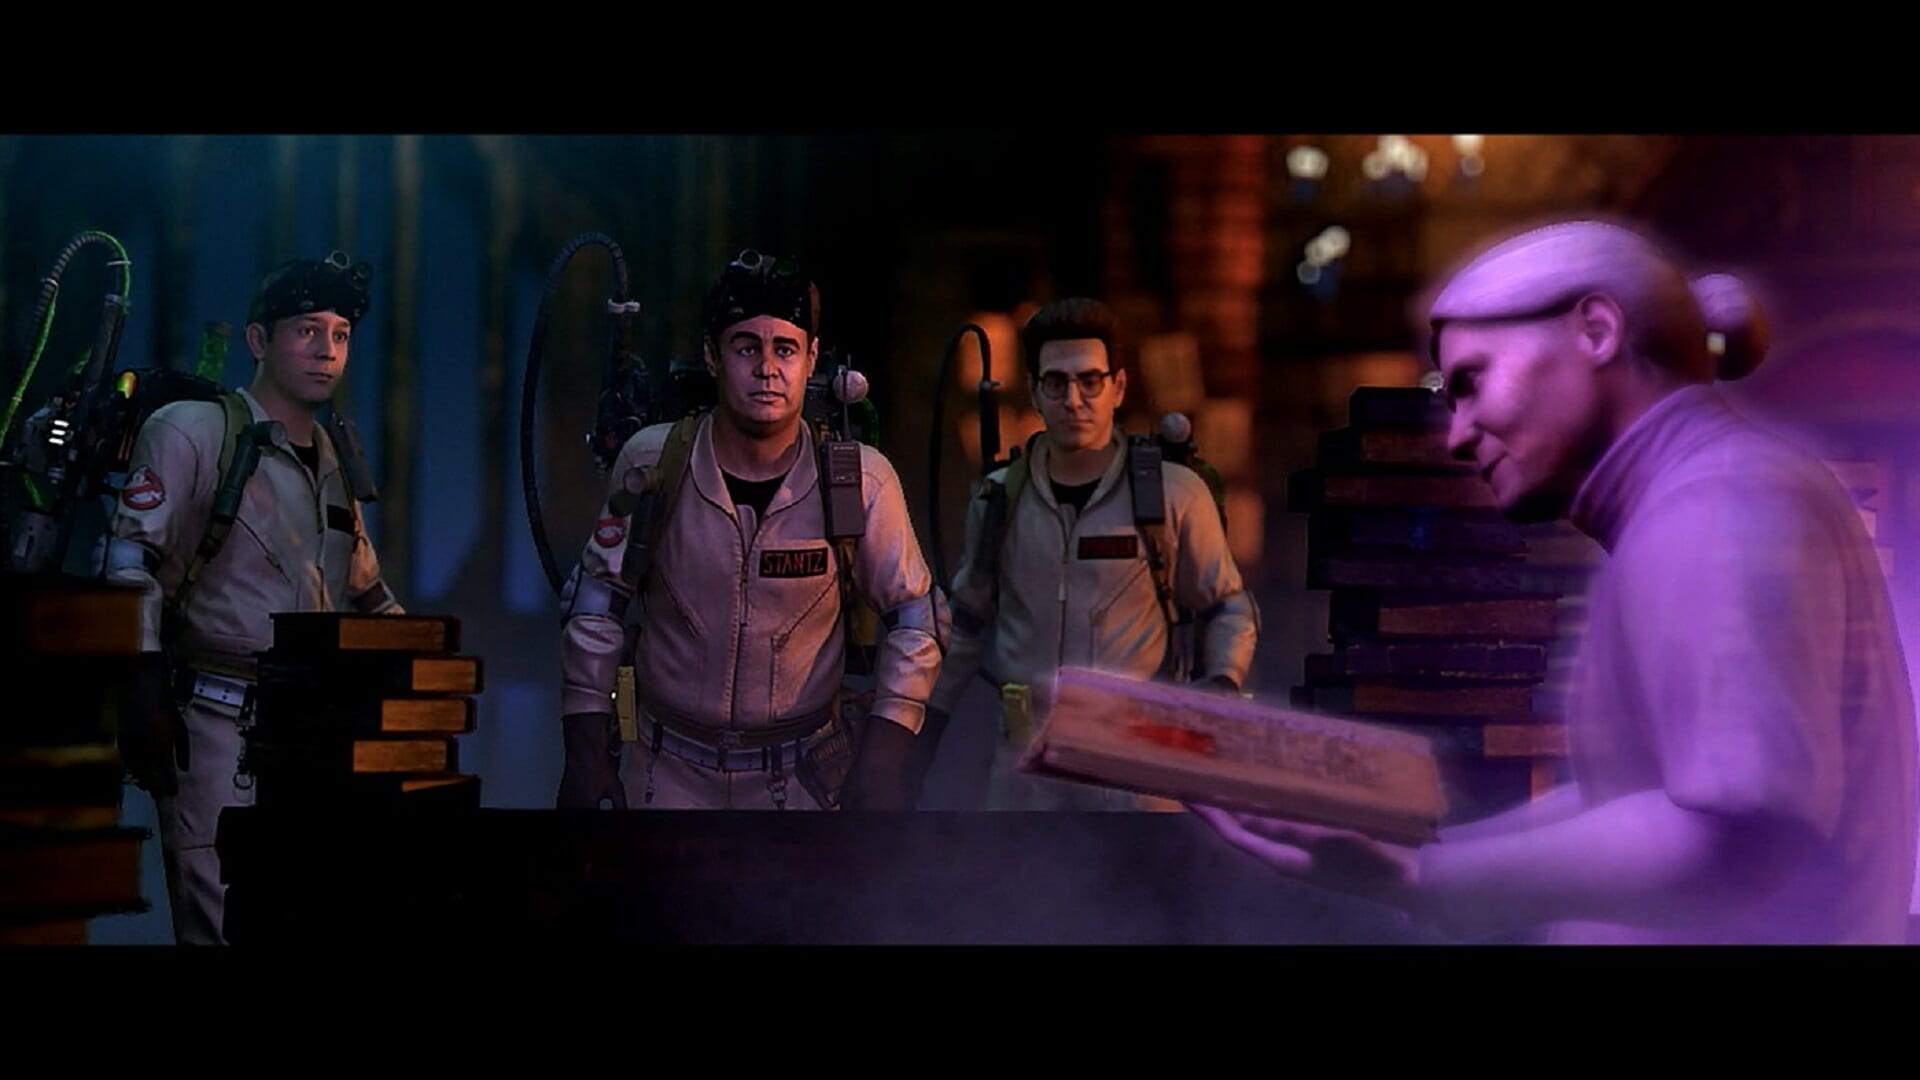 Ghostbusters Video Game - A ghostly old woman walks by three shocked ghostbusters. She is holding a pizza.